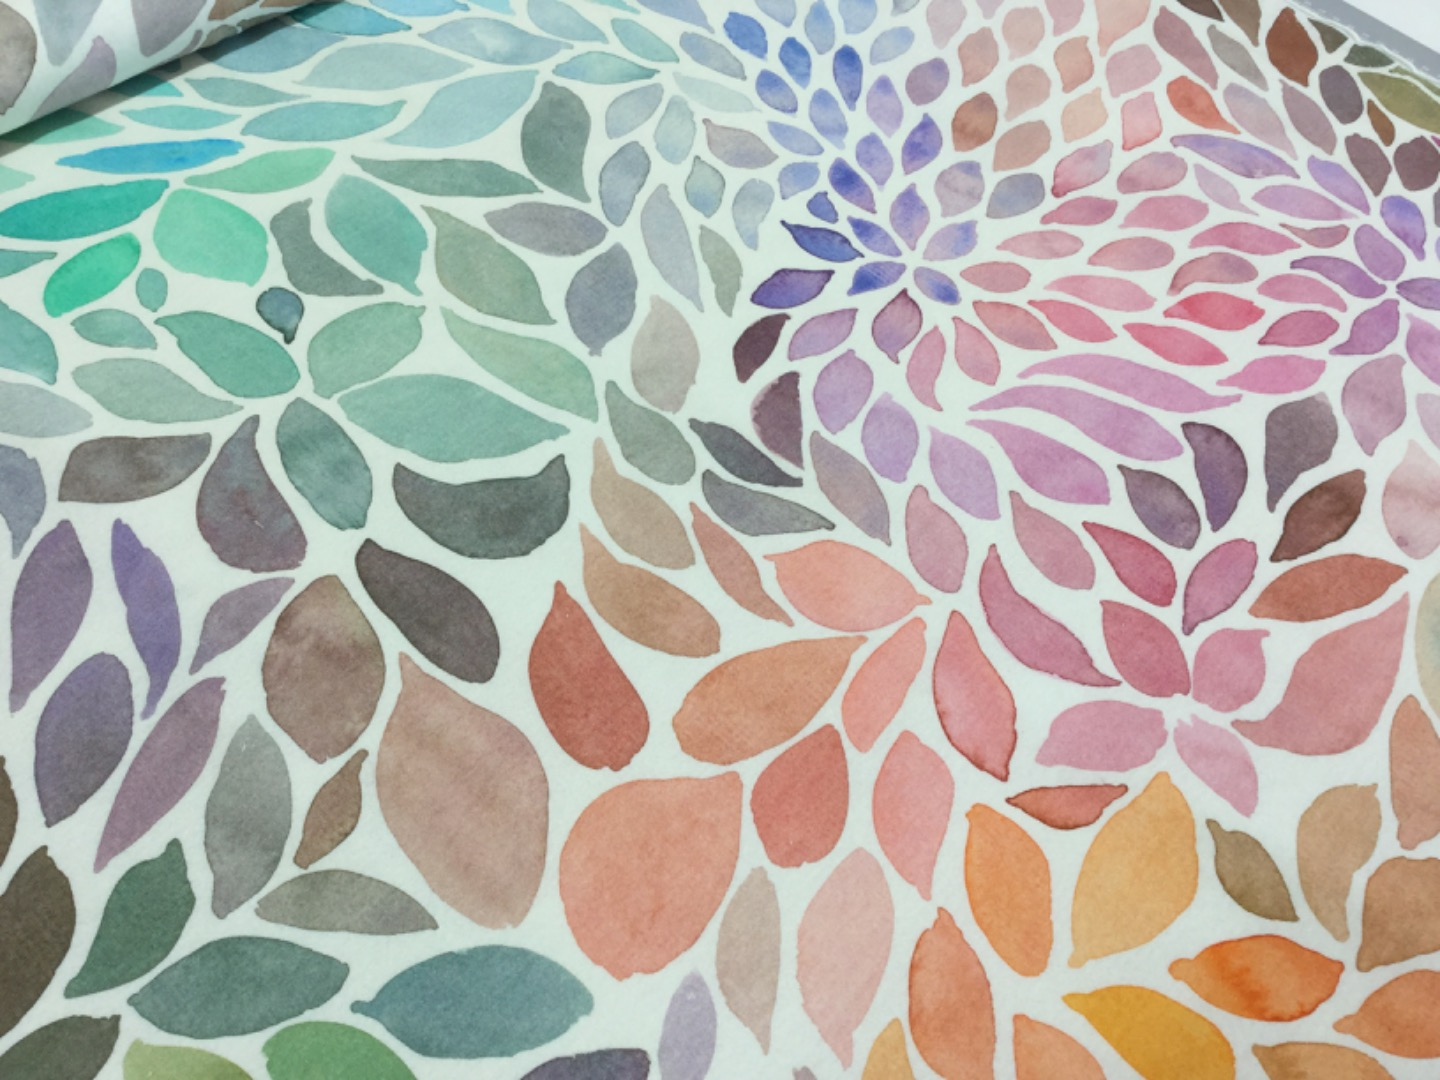 05m Jersey Colorleaves by Astrokatze Aquarell